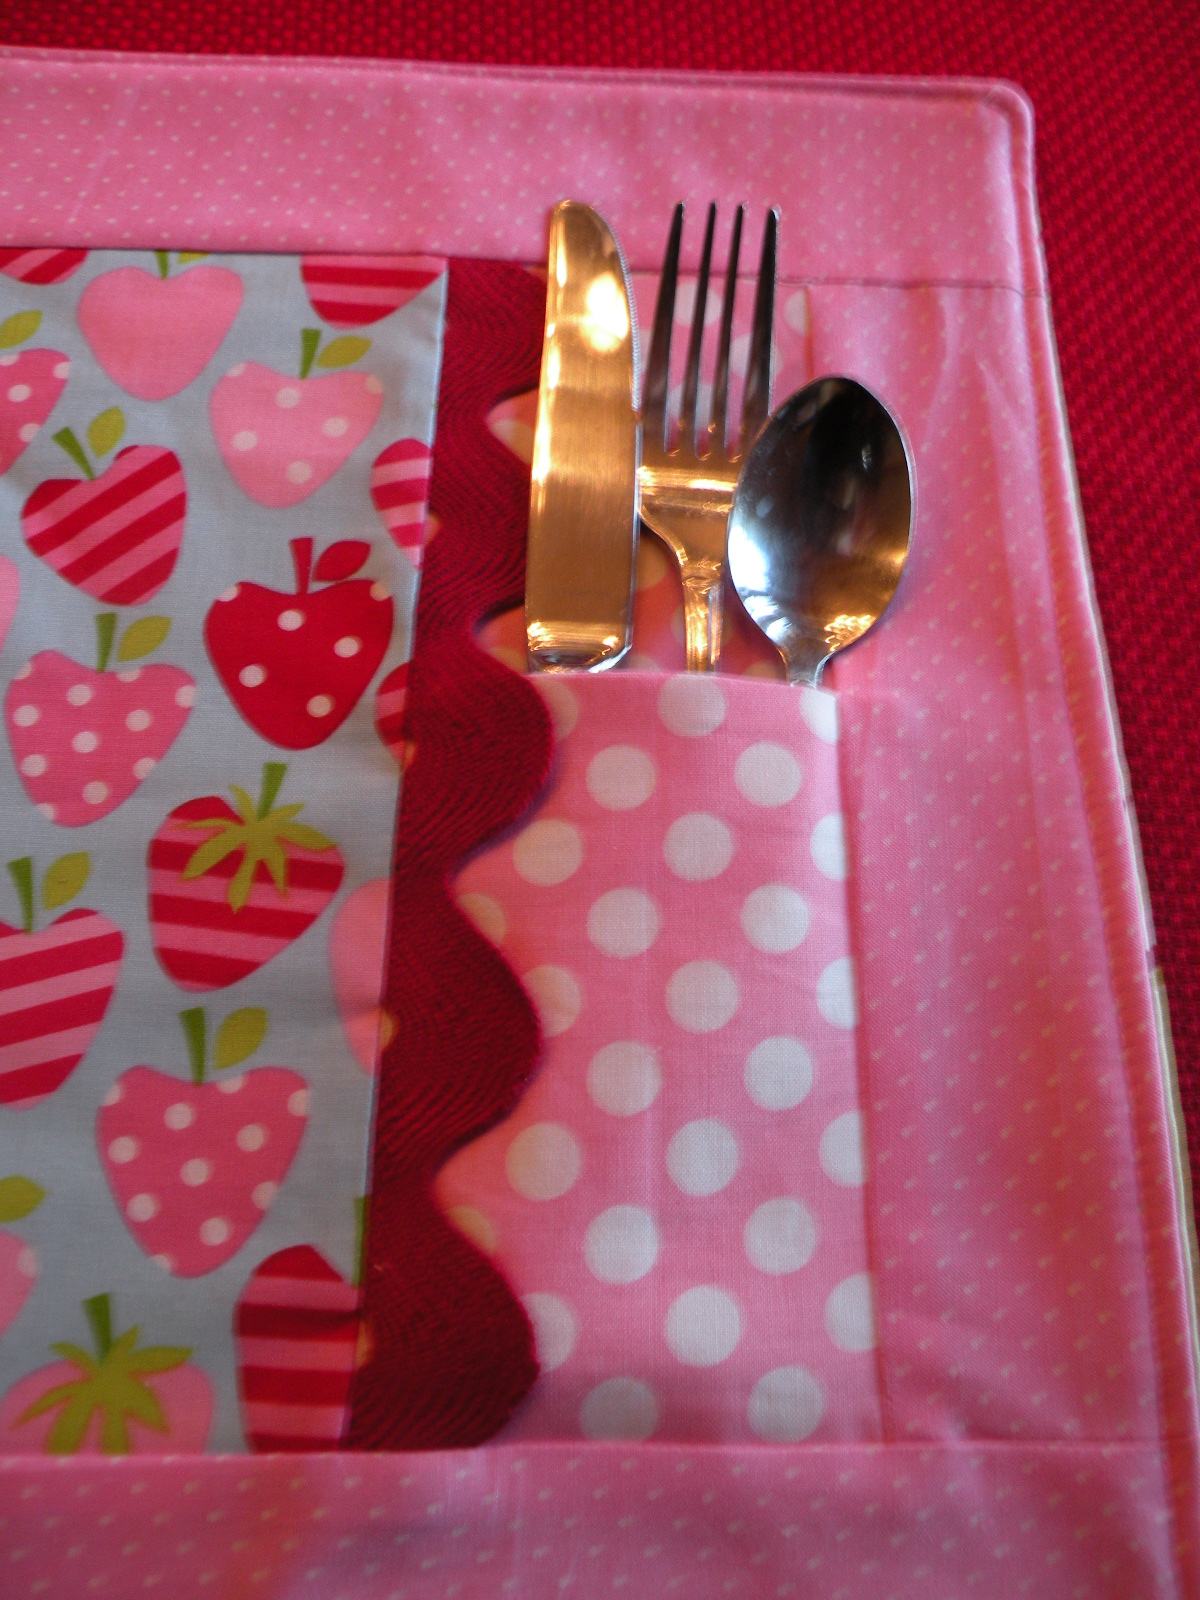 Patterns for Placemat with Silverware Pocket